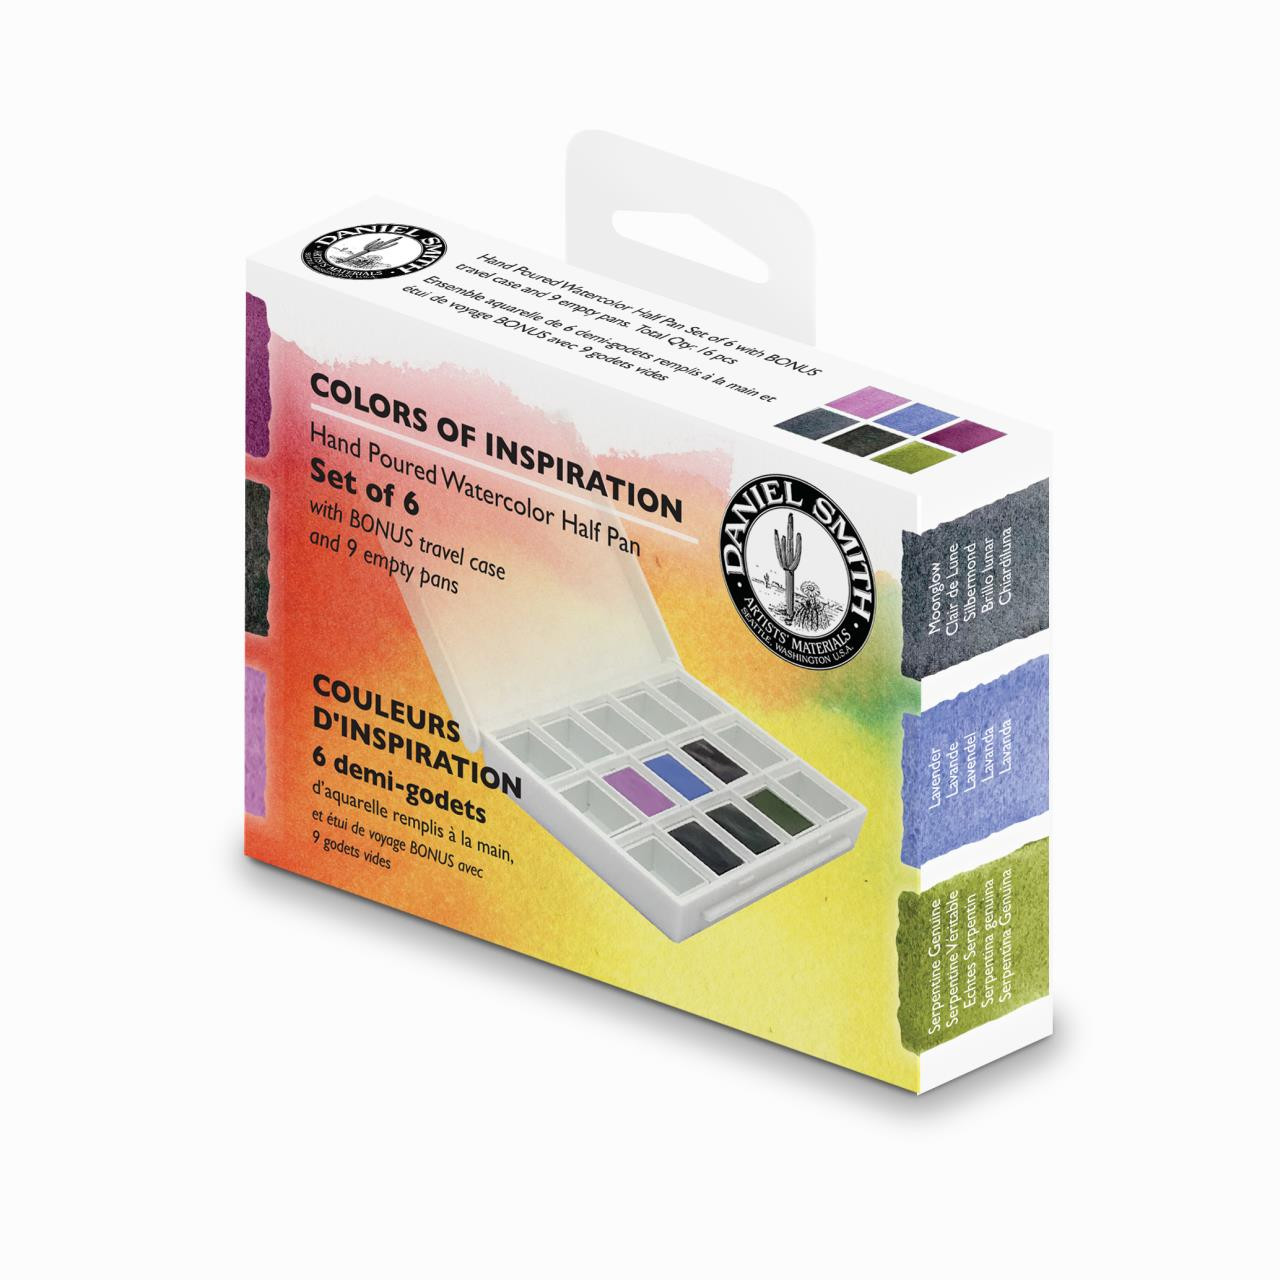 Colors of Inspiration, DANIEL SMITH Extra Fine Watercolors Half Pan Set - 743162034048